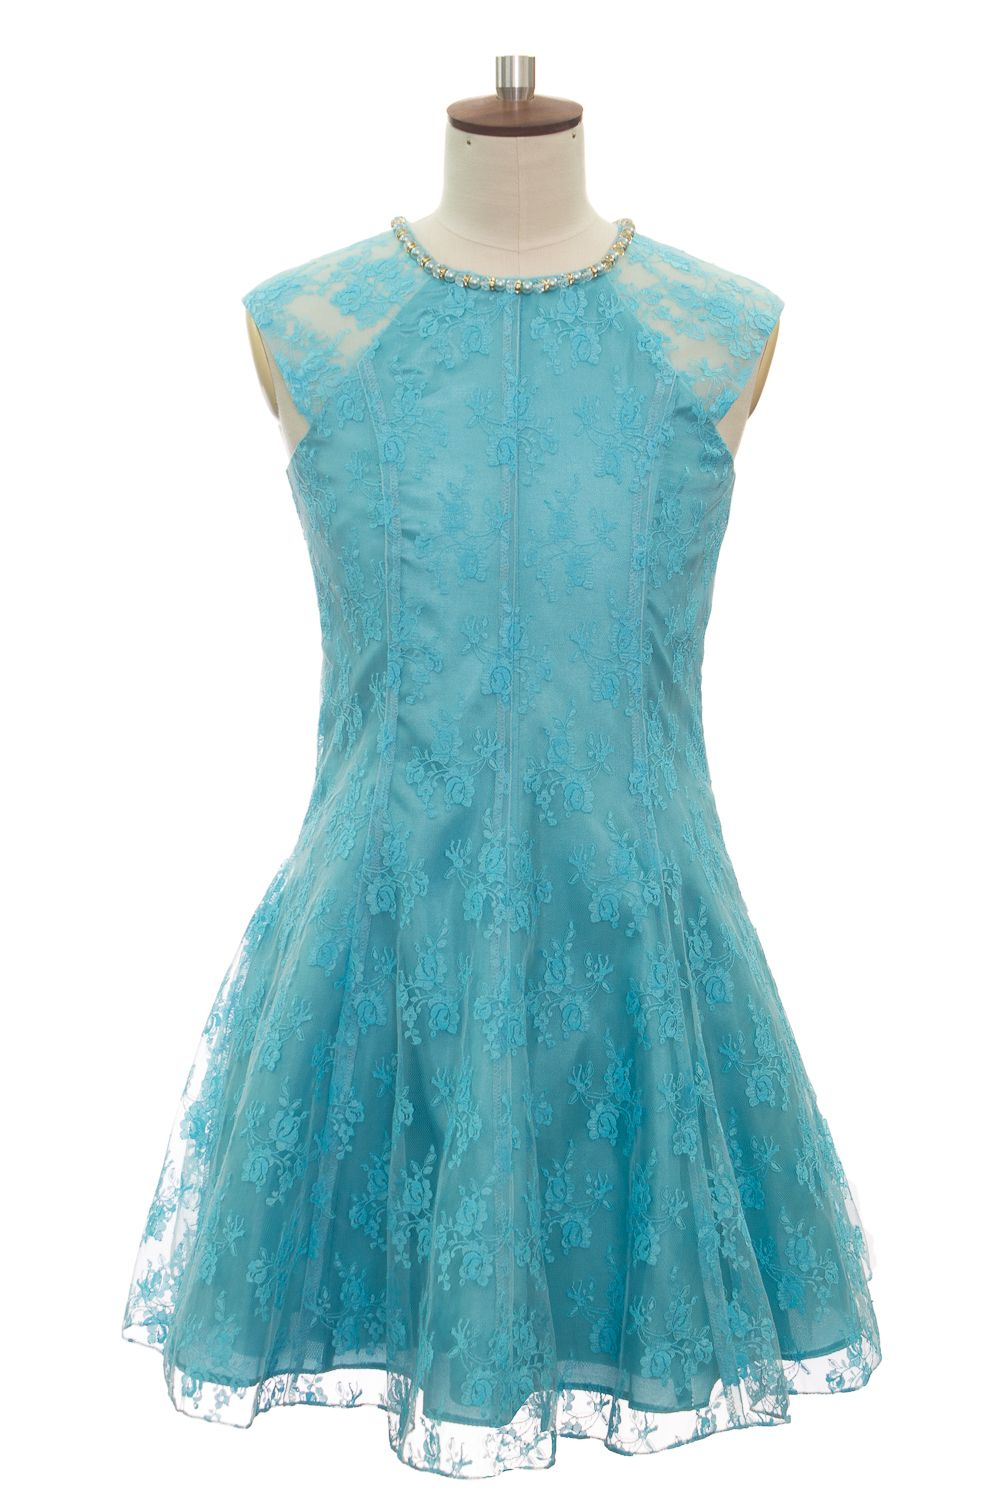 TURQUOISE LACE SUMMER PARTY DRESS | Baby girl dresses | Pinterest